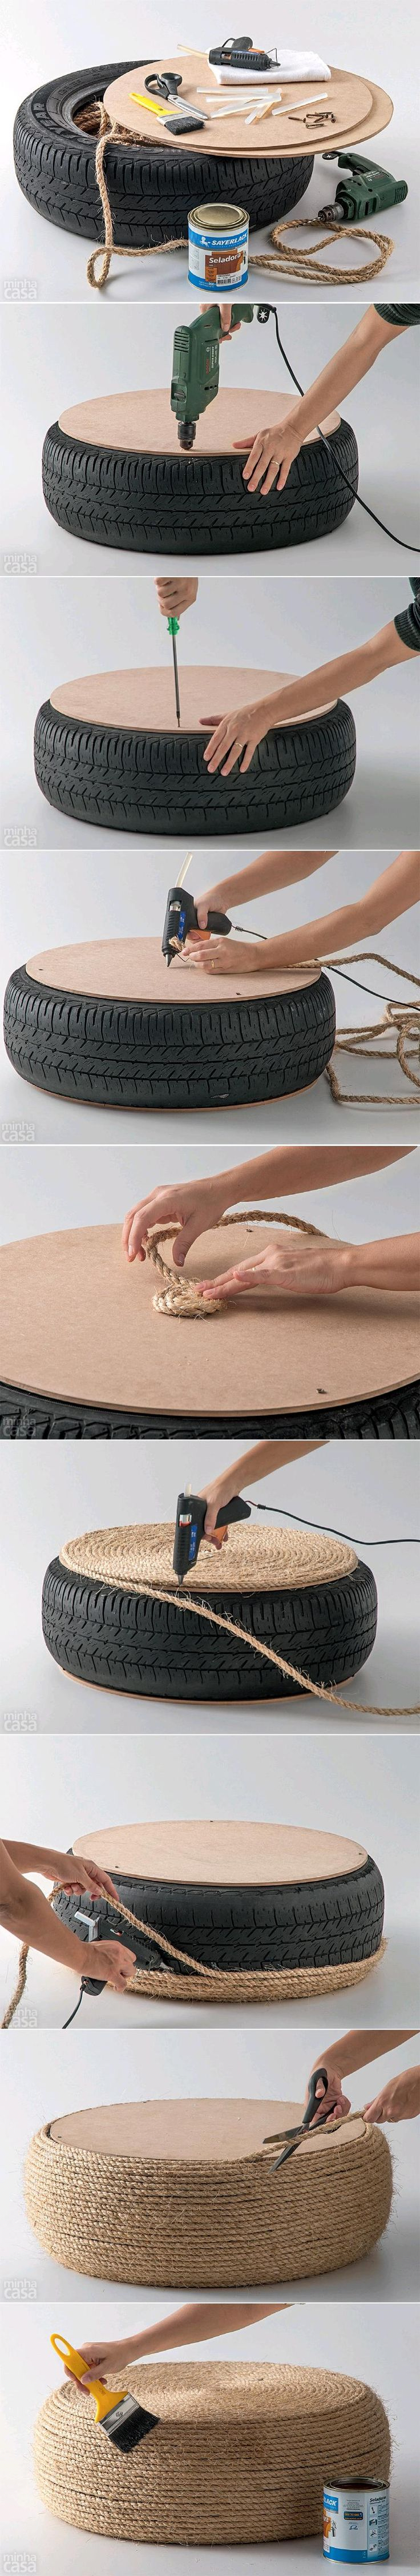 best 20 tire ottoman ideas on pinterest tire seats weekend crafts and rope tire ottoman. Black Bedroom Furniture Sets. Home Design Ideas